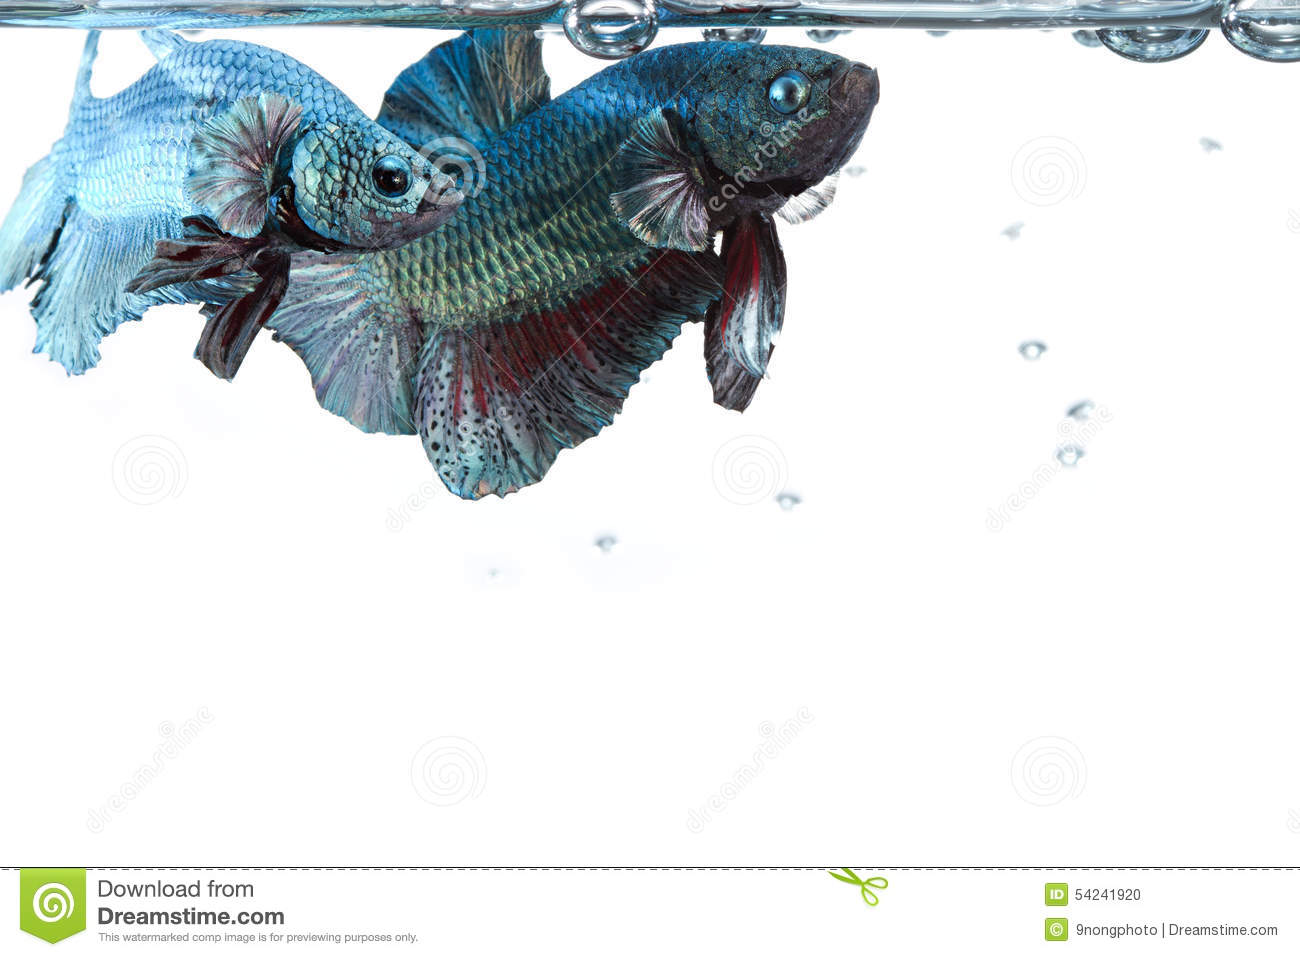 Artistic pair of betta fighting fish, with water surface border